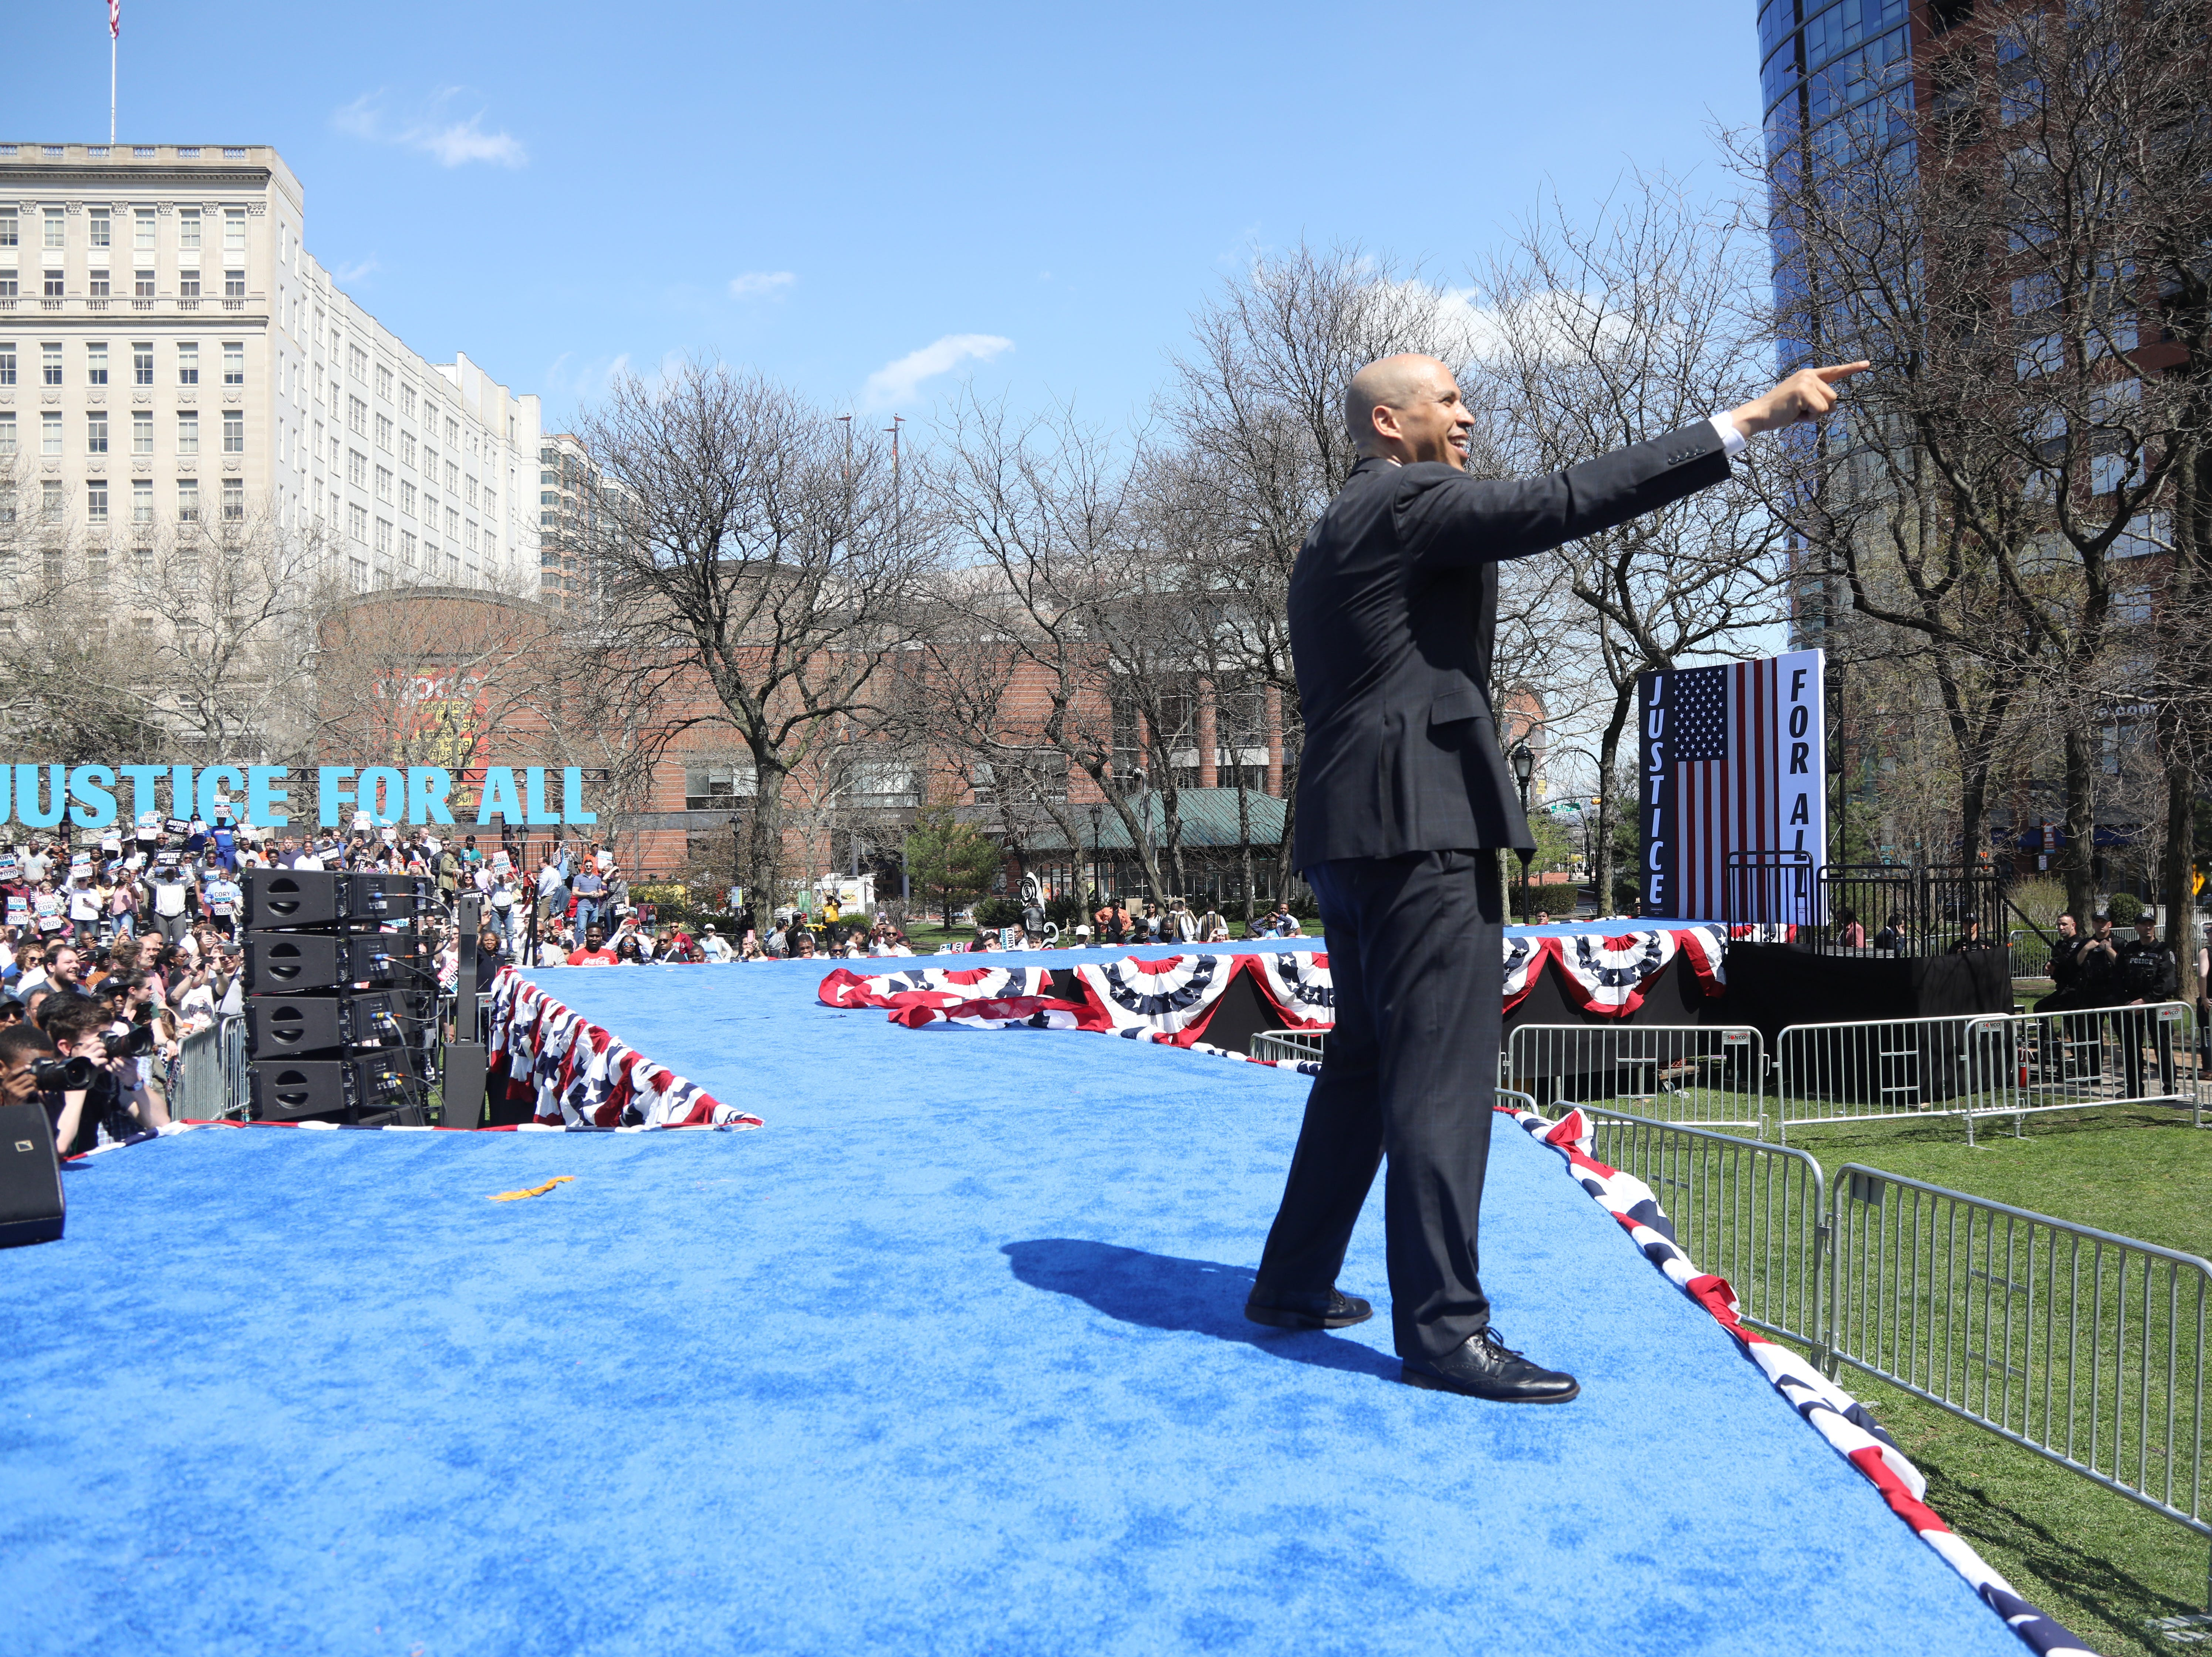 Senator Cory Booker thanks supporters for attending a rally to kick off the Cory Booker campaign for president that was held at Military Park in Newark on April 13, 2019.